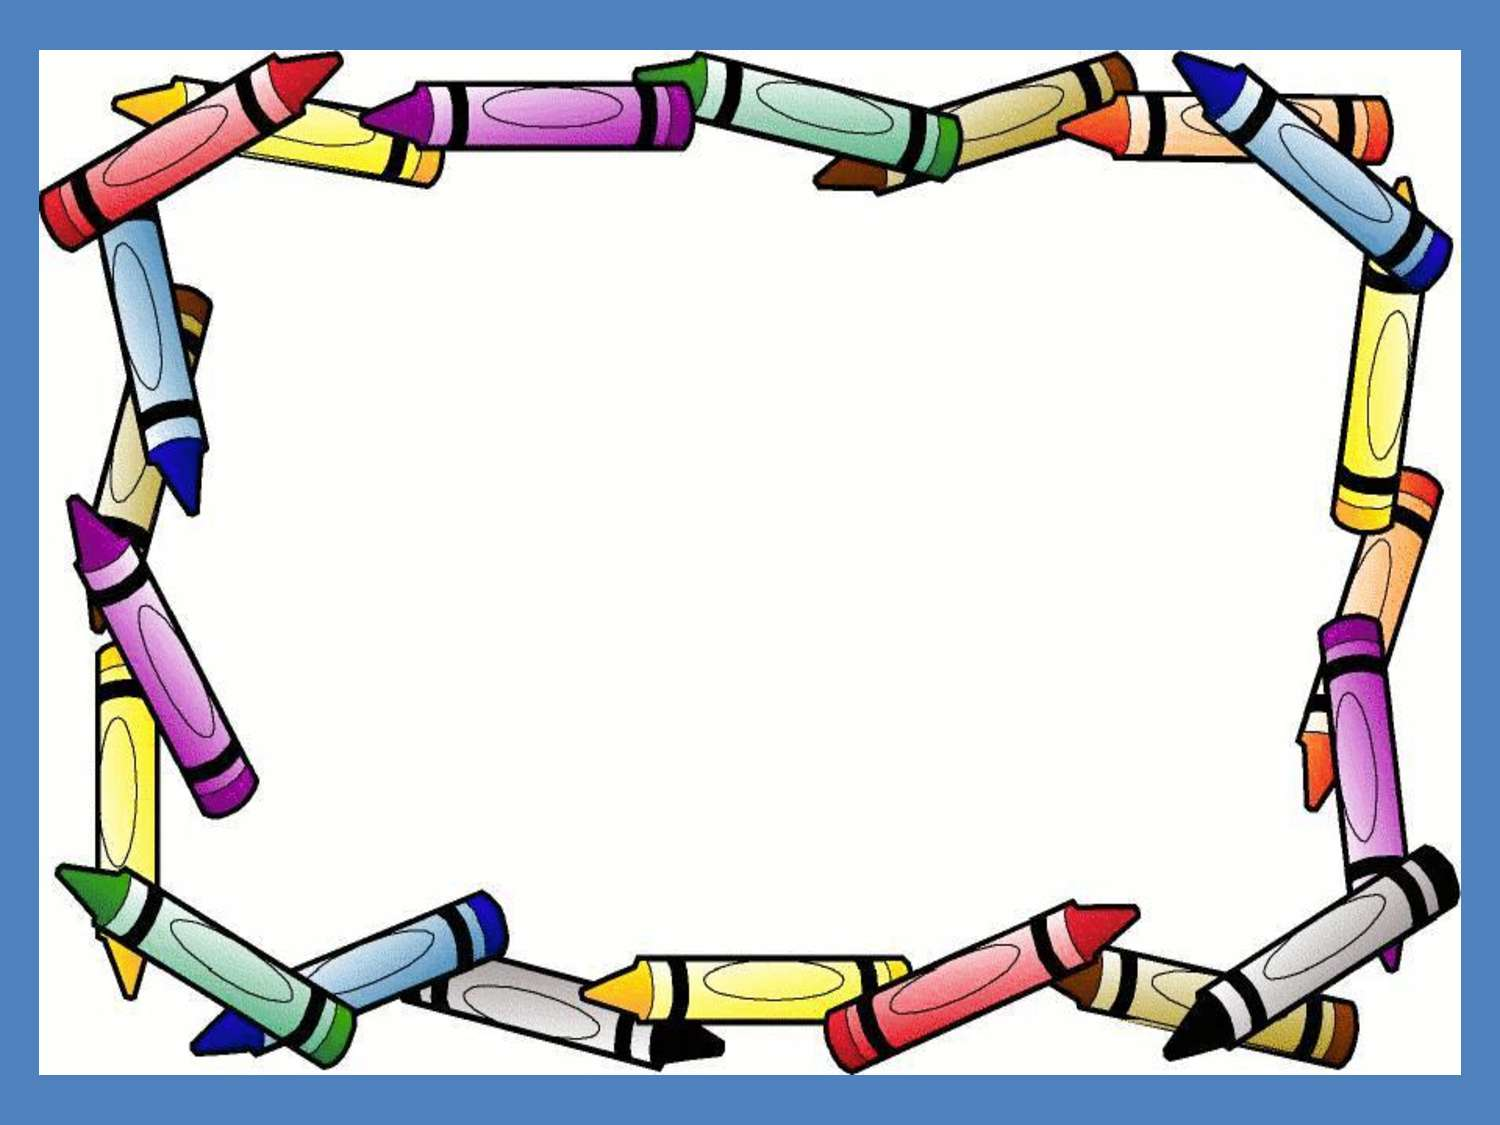 Crayon clipart background powerpoint. Border frame free ppt